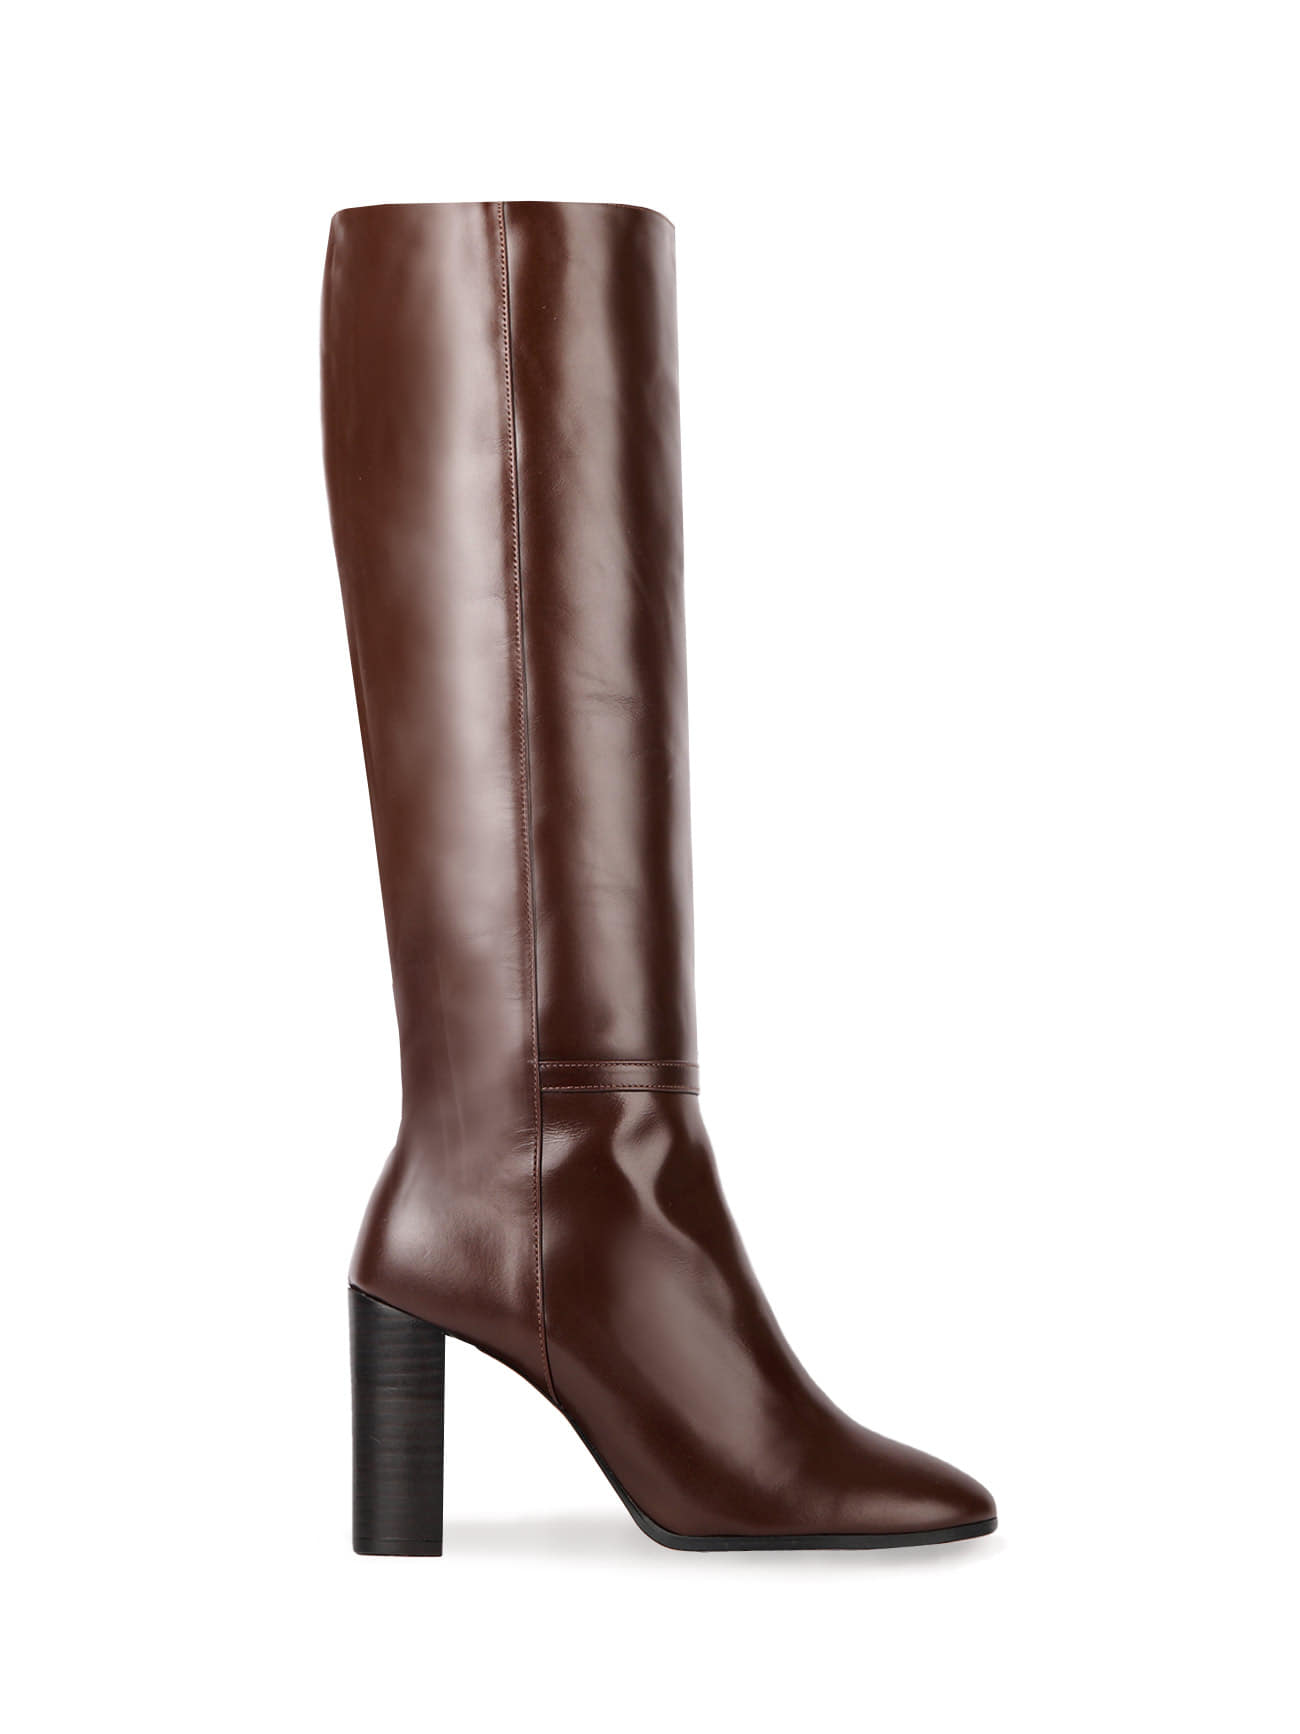 KATE LEATHER KNEE BOOTS (7cm, 9cm) - CHOCO